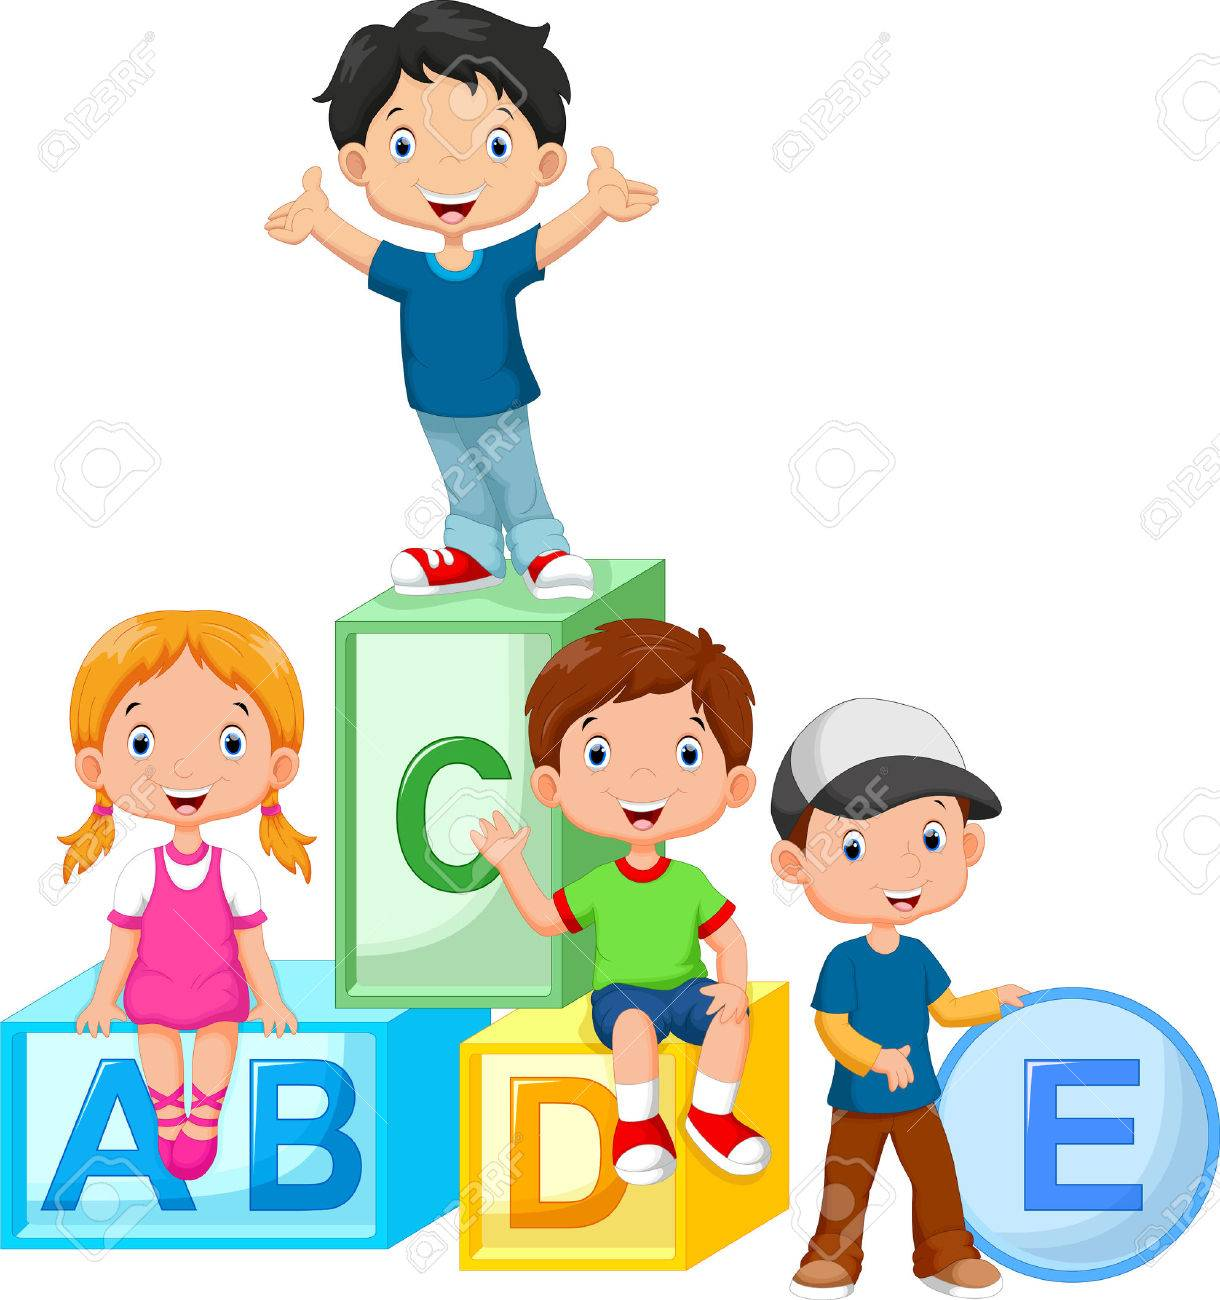 happy school children playing with alphabet blocks stock vector 47538199 - Images Of Children Playing At School